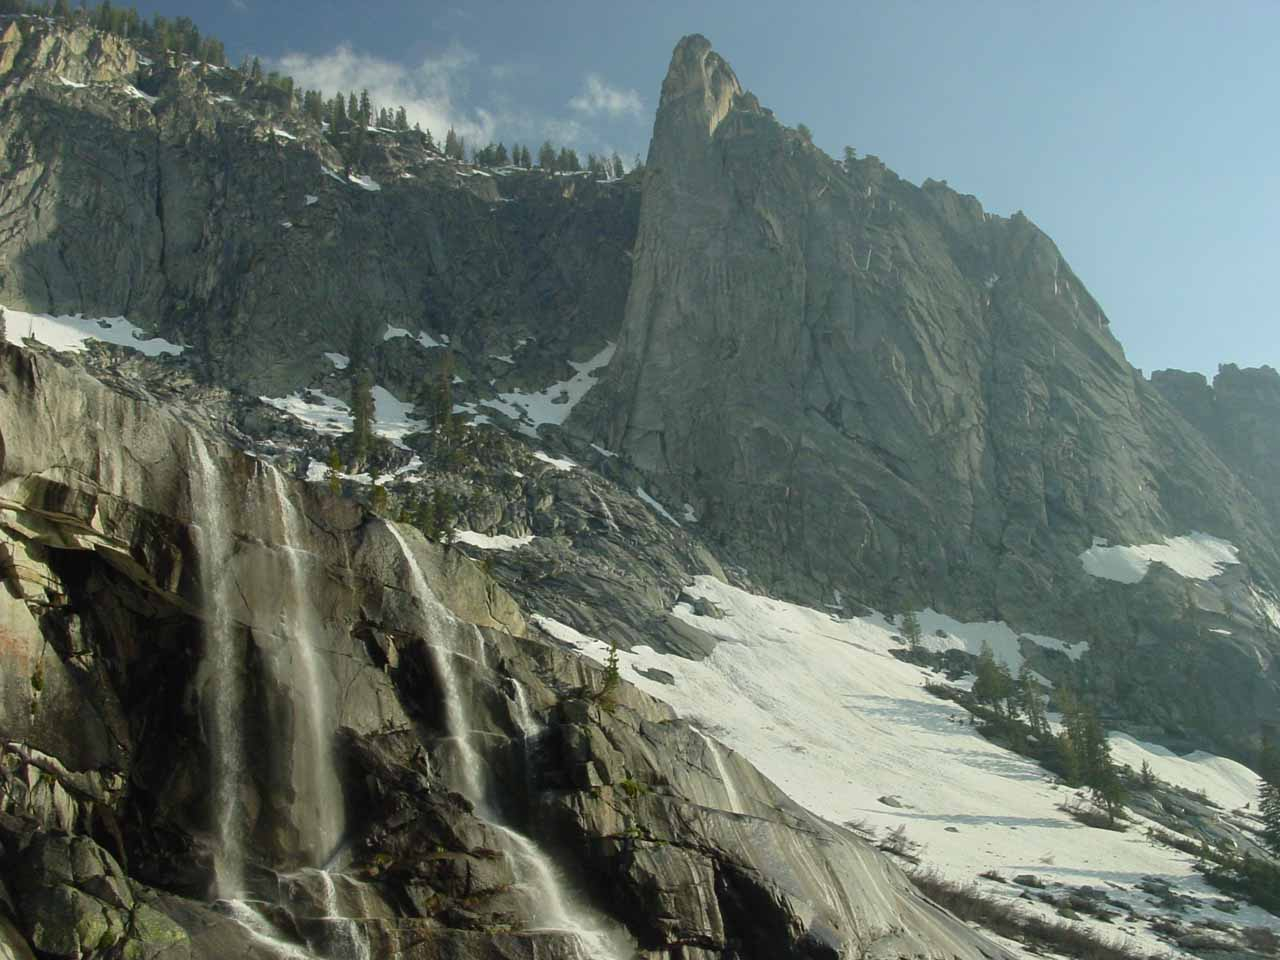 Looking towards the Watchtower and a trio of ephemeral waterfalls from the end of the Tokopah Falls trail